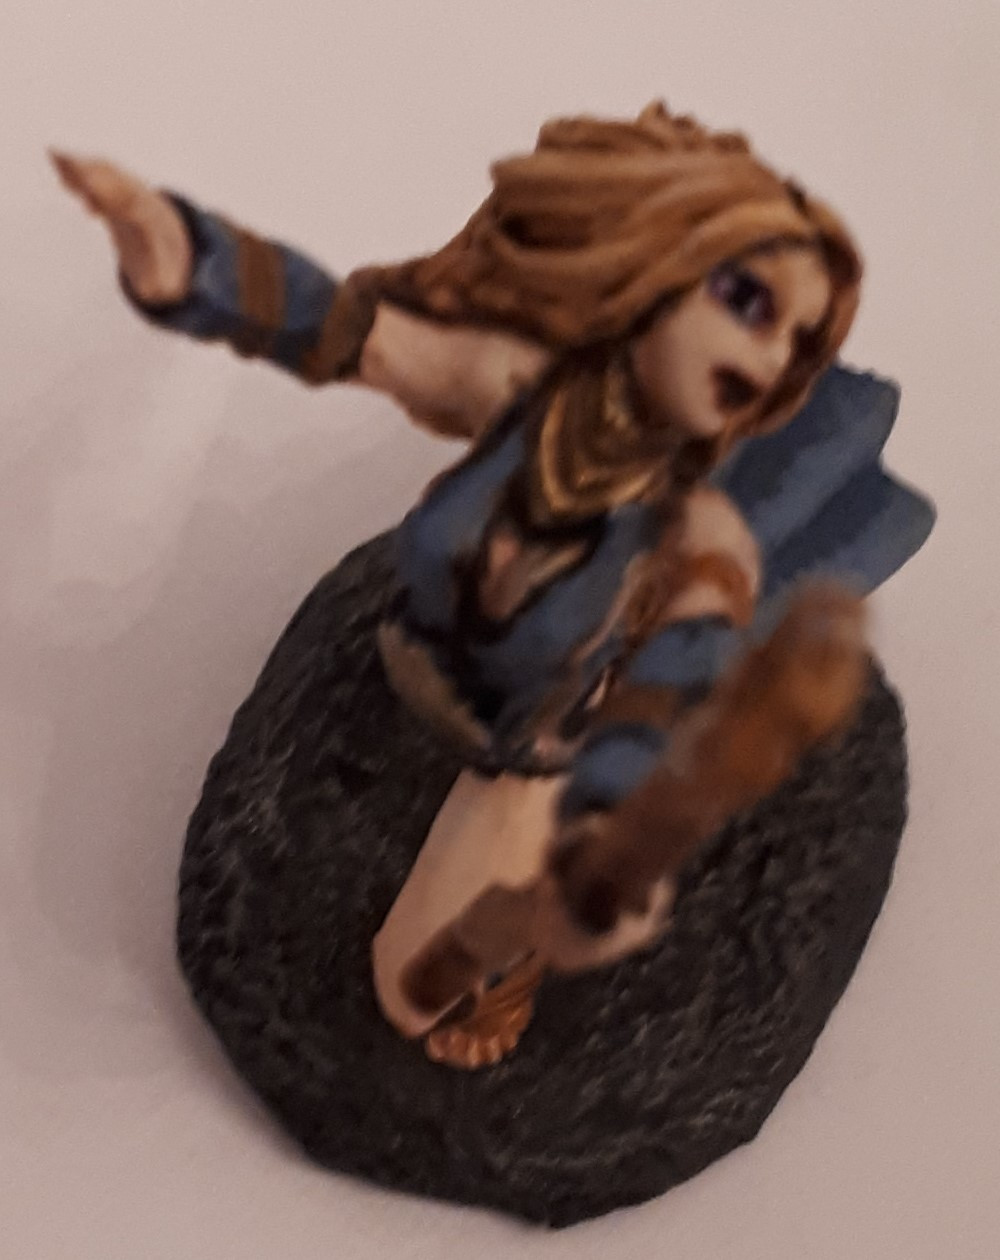 I hate how it's impossible to get the whole model in focus with that staff pointing towards the camera